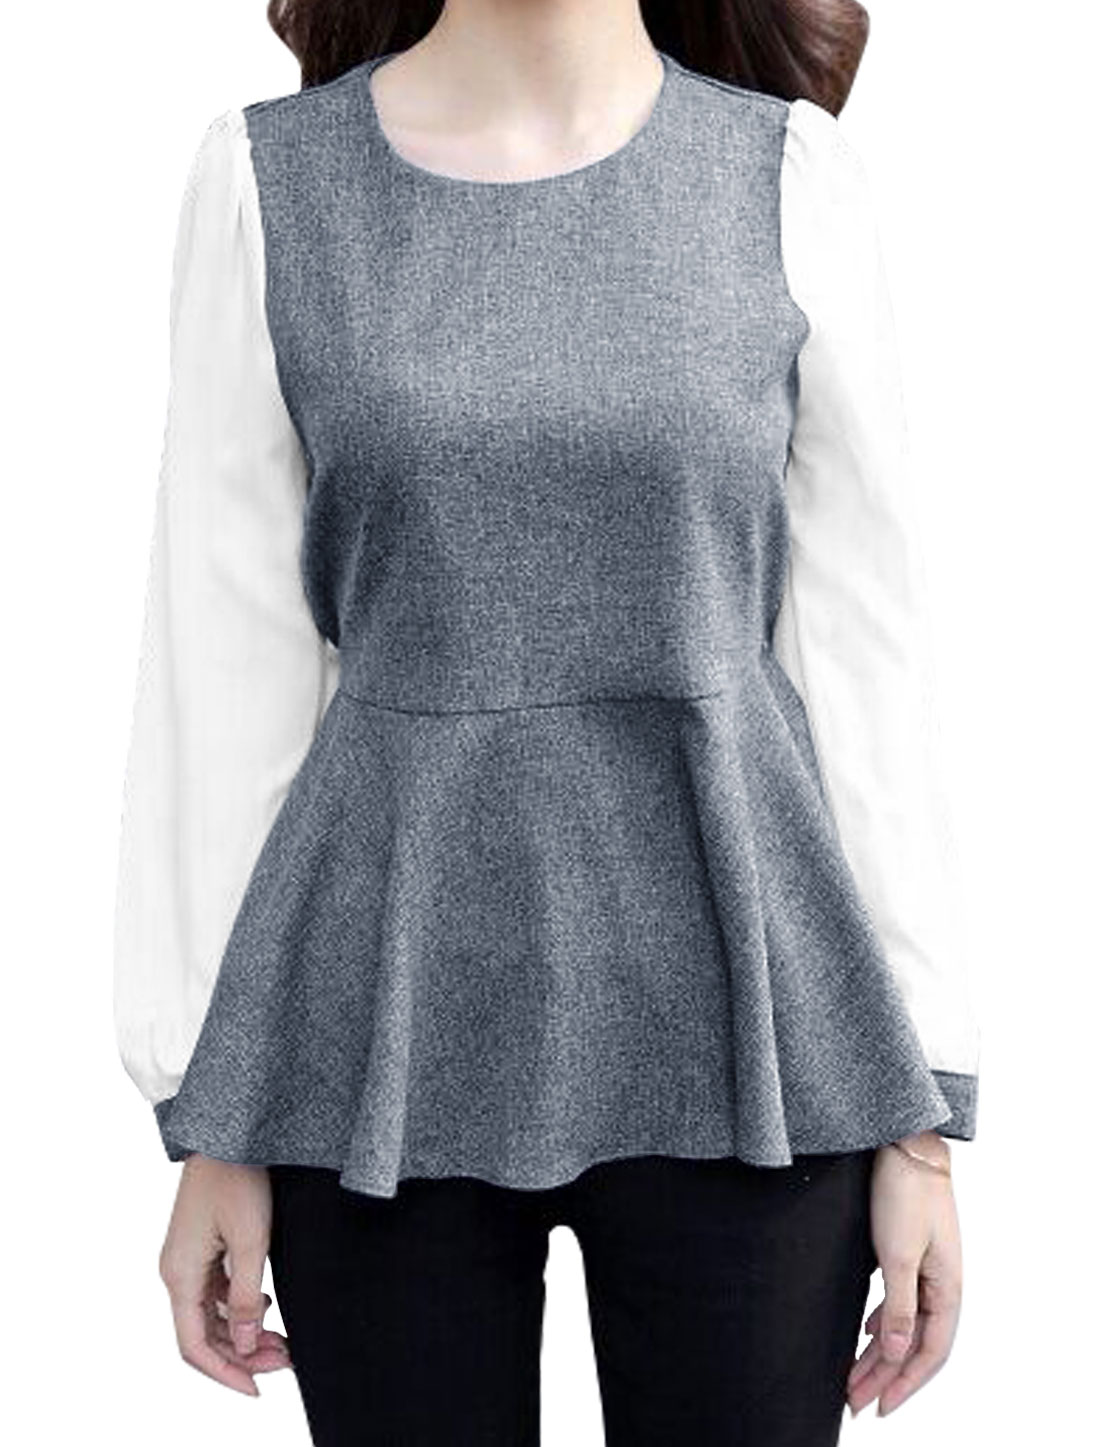 Woman Long Sleeves Elastic Waist Back Chiffon Peplum Top Gray XS